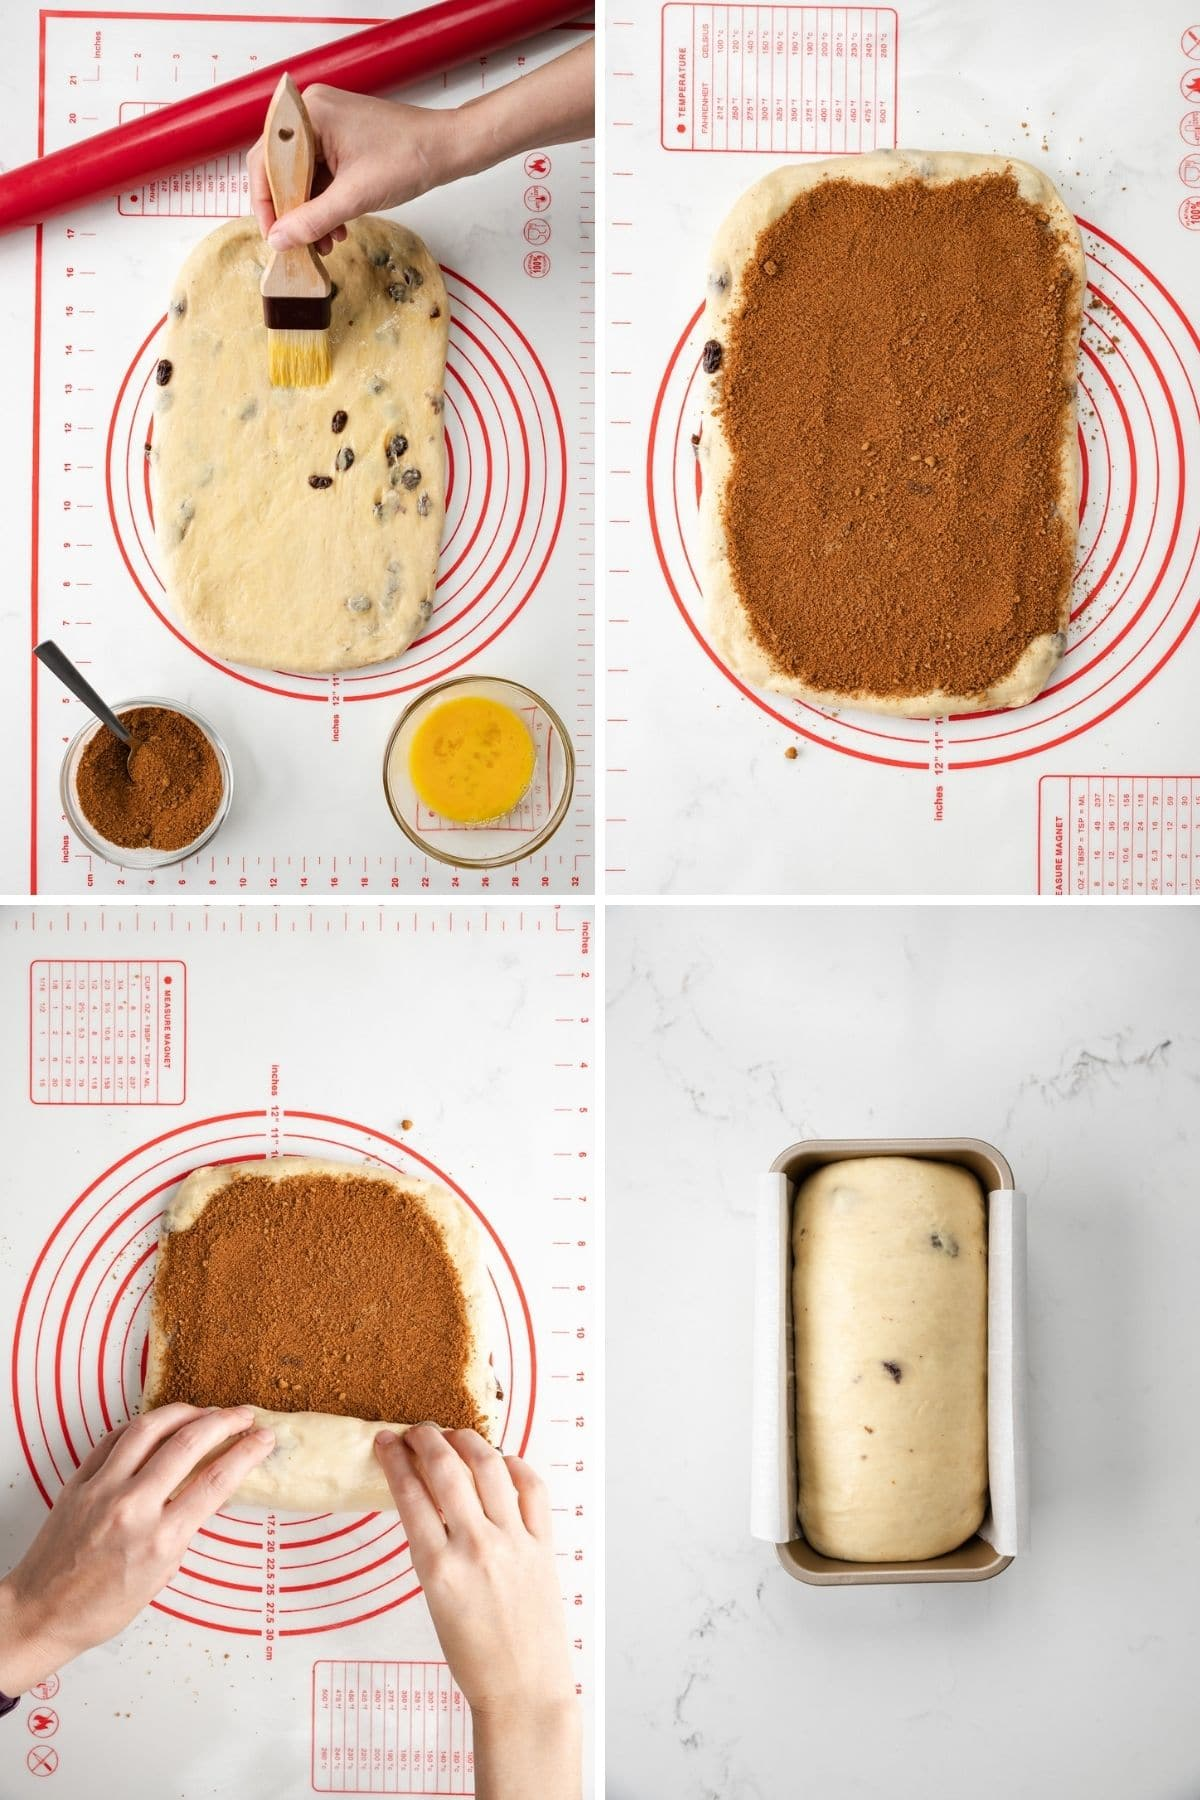 dough rolled into a rectangle being brushed with egg, cinnamon sugar mixture spread over dough, hand rolling dough into loaf shape, and an unbaked loaf in bread bread